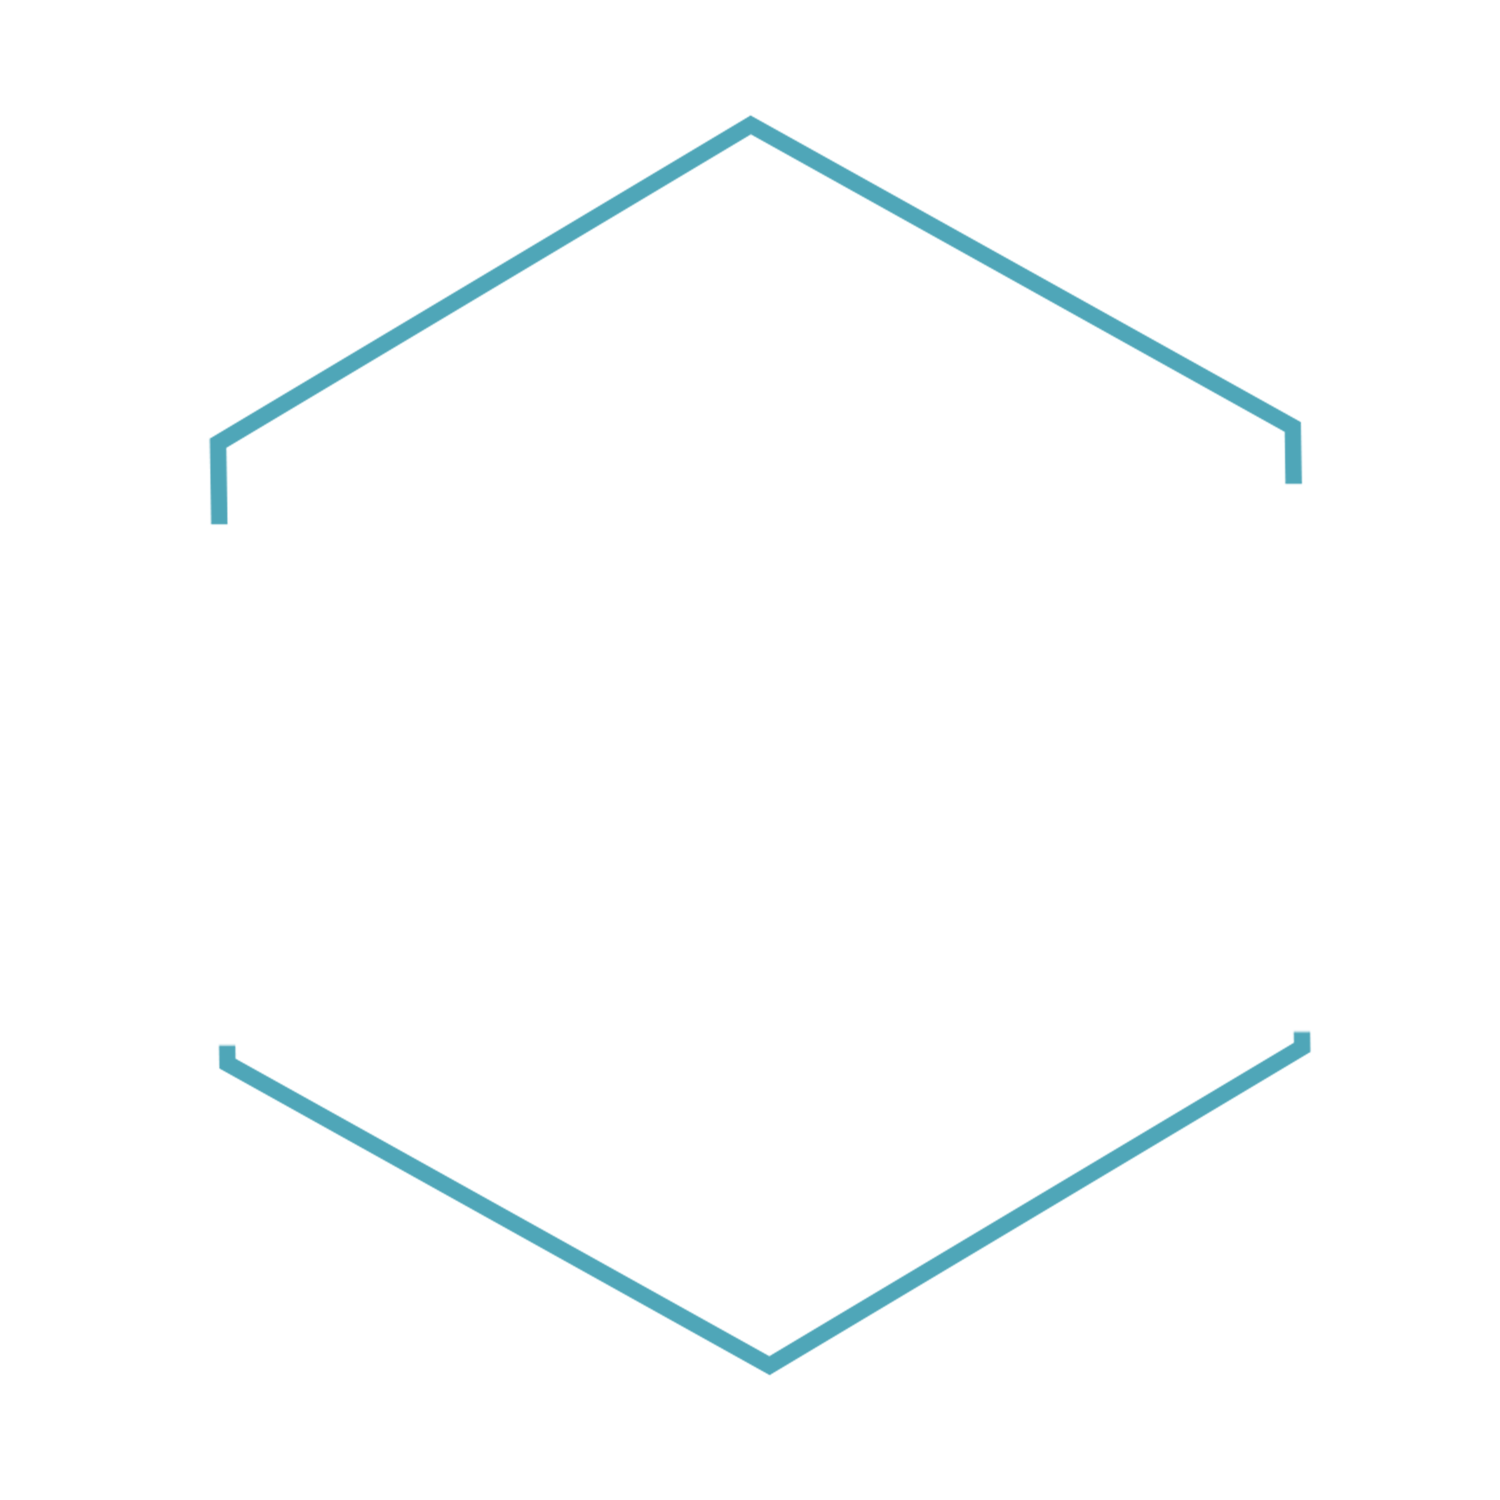 Rockwall Counseling & Wellness